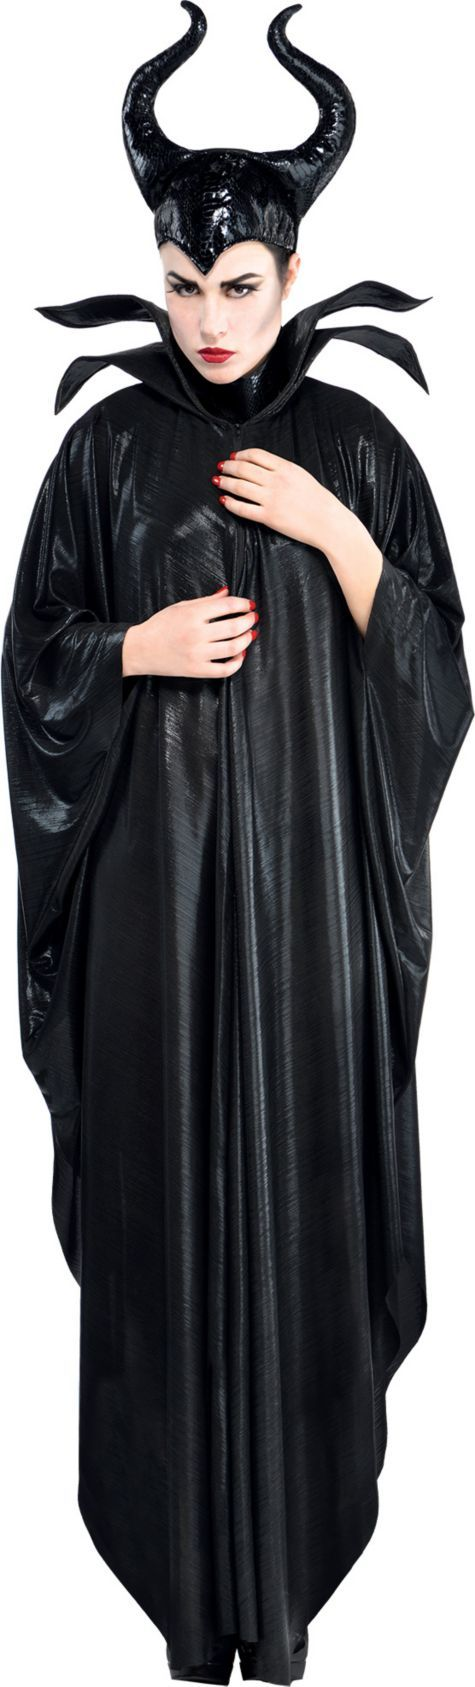 Adult Maleficent Costume – Maleficent - Party City | Party :D ...